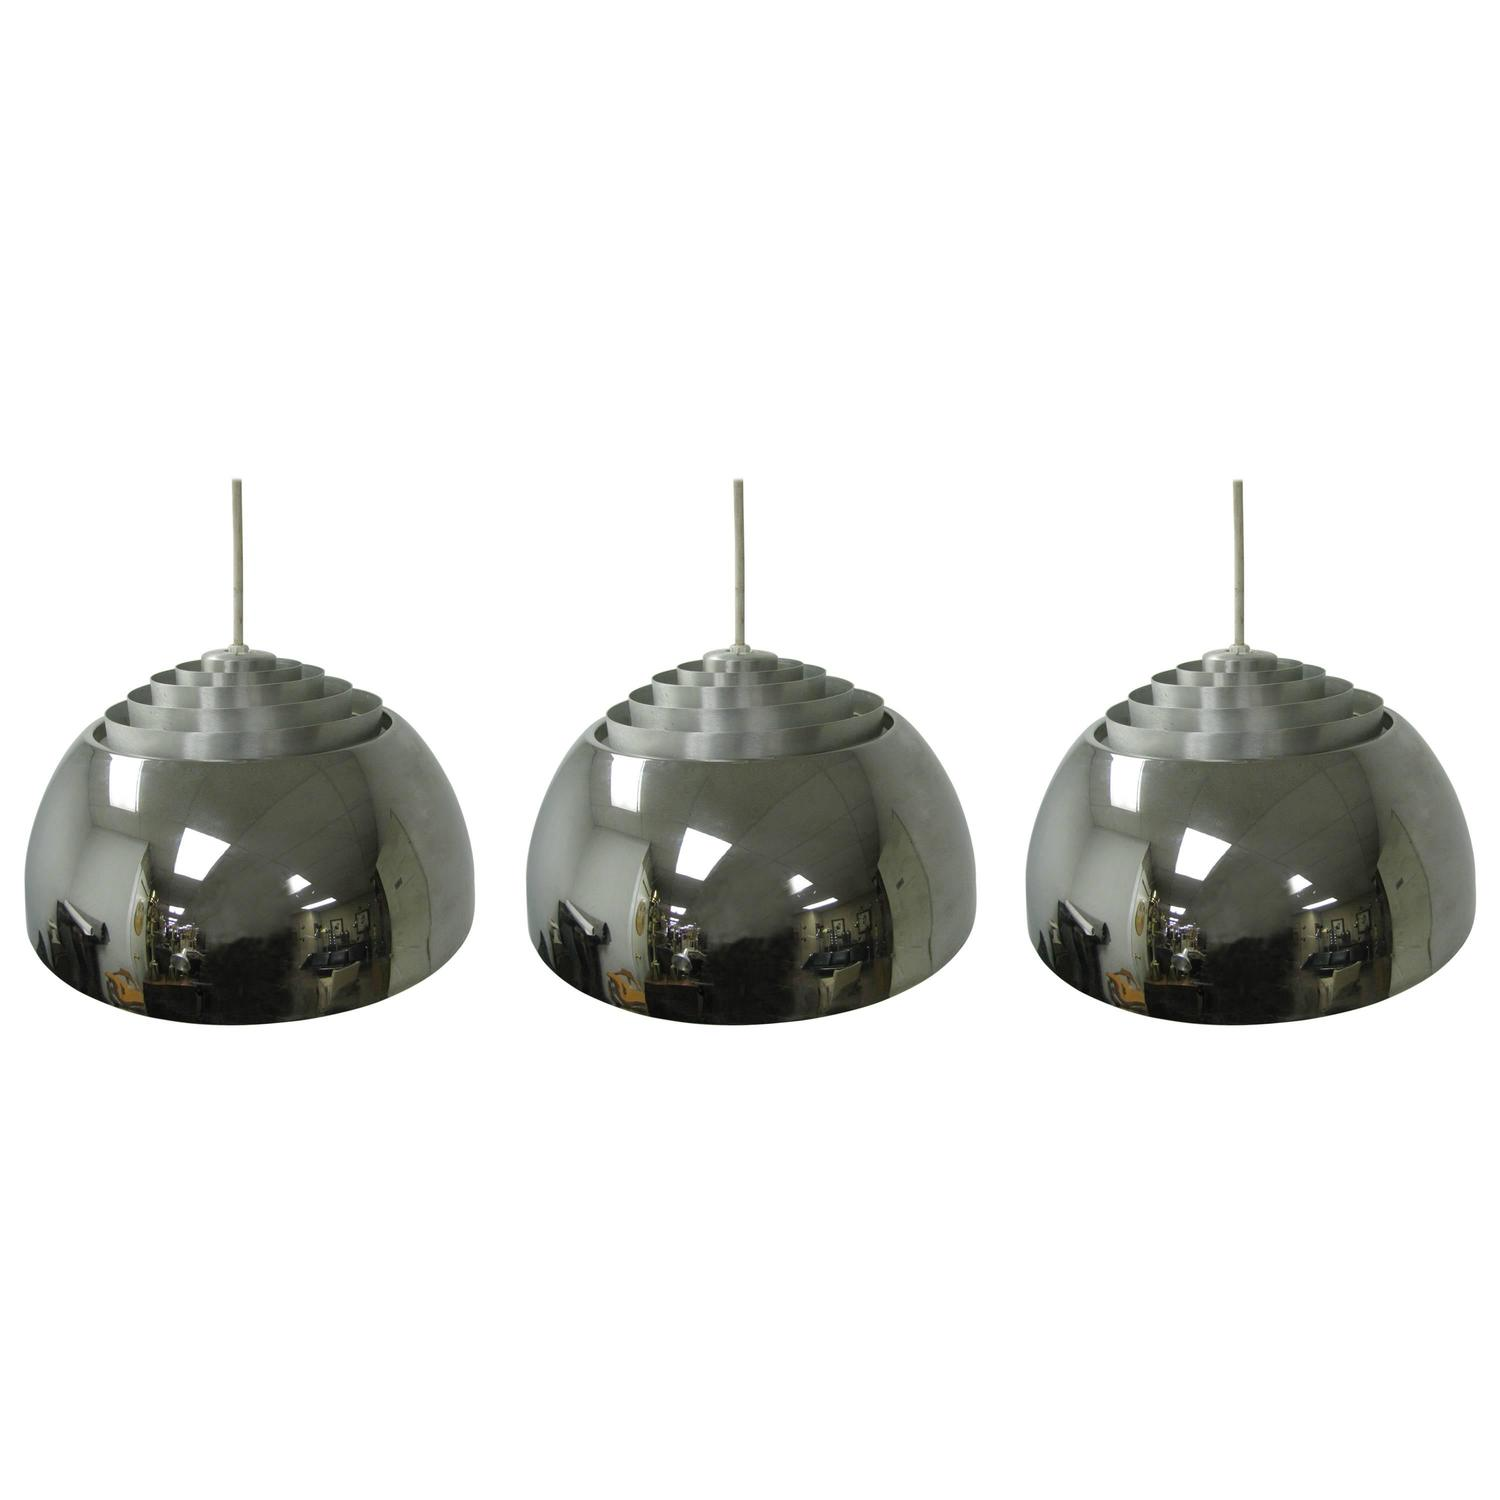 Lightolier Ring Chandelier At 1stdibs: Mid-Century Modern Nickel Chrome Louvered Pendant Lamps By